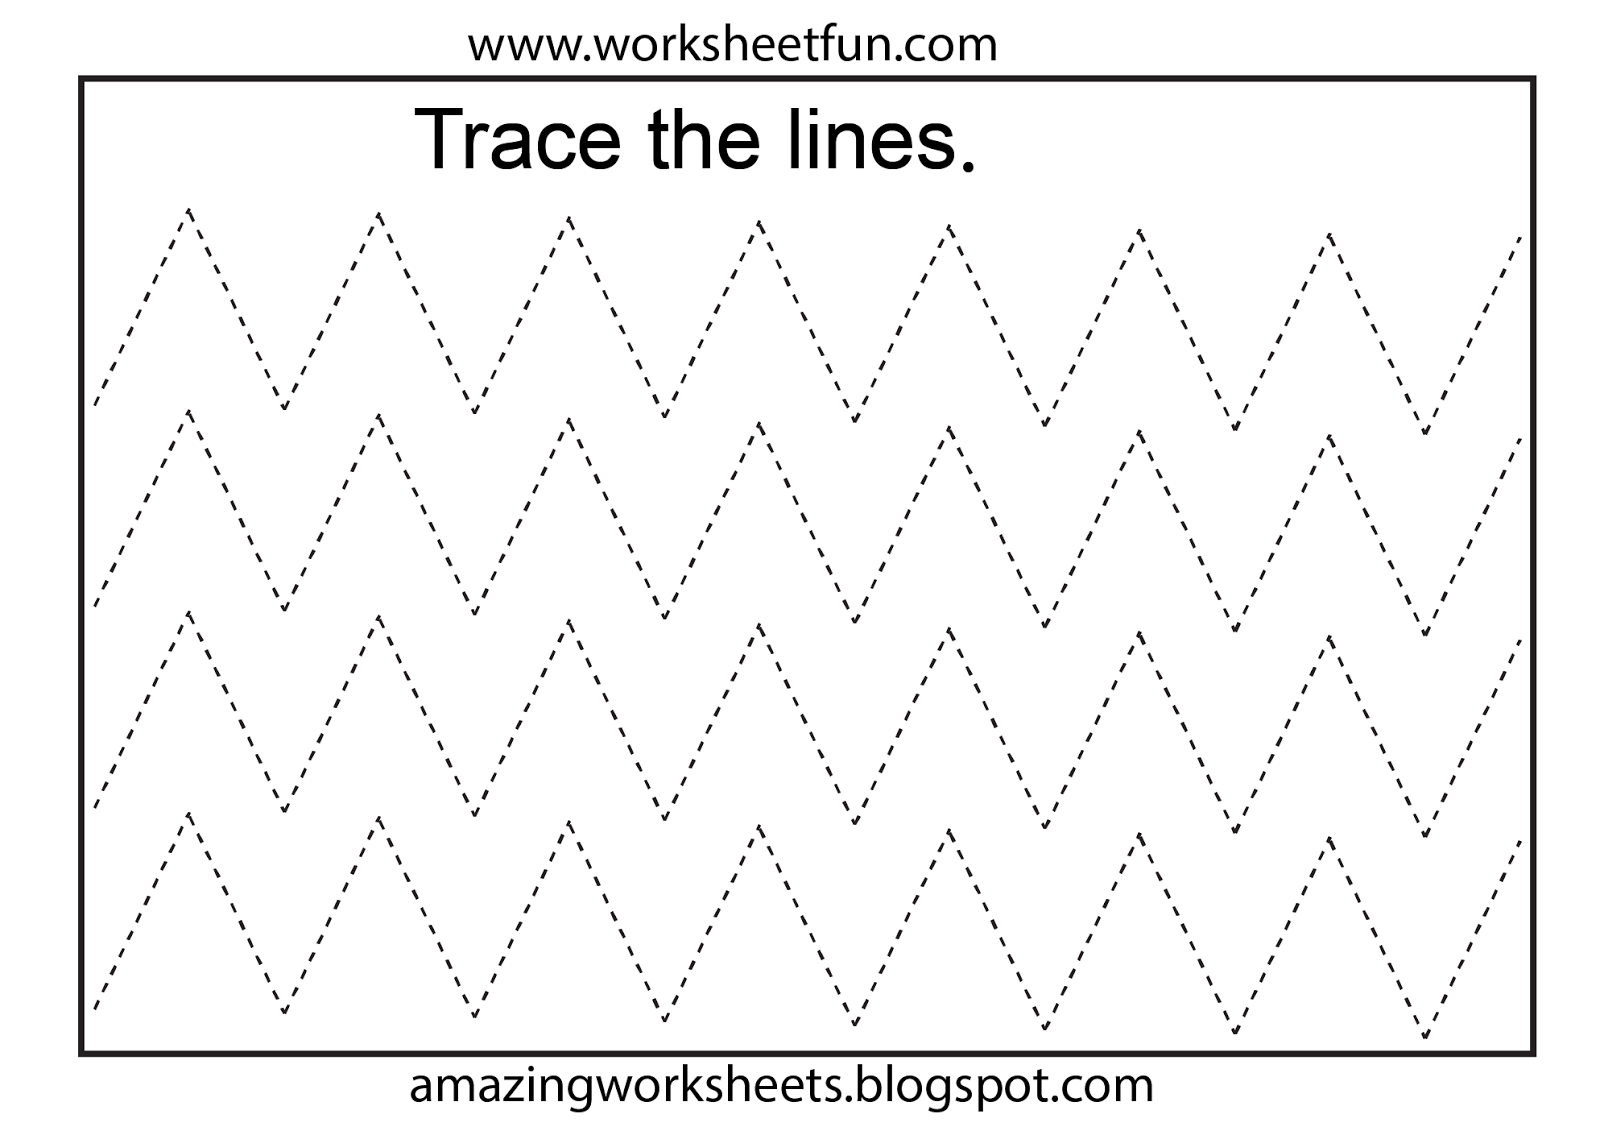 Free Printable Tracing Worksheets Free Worksheets Library – Free Printing Worksheets